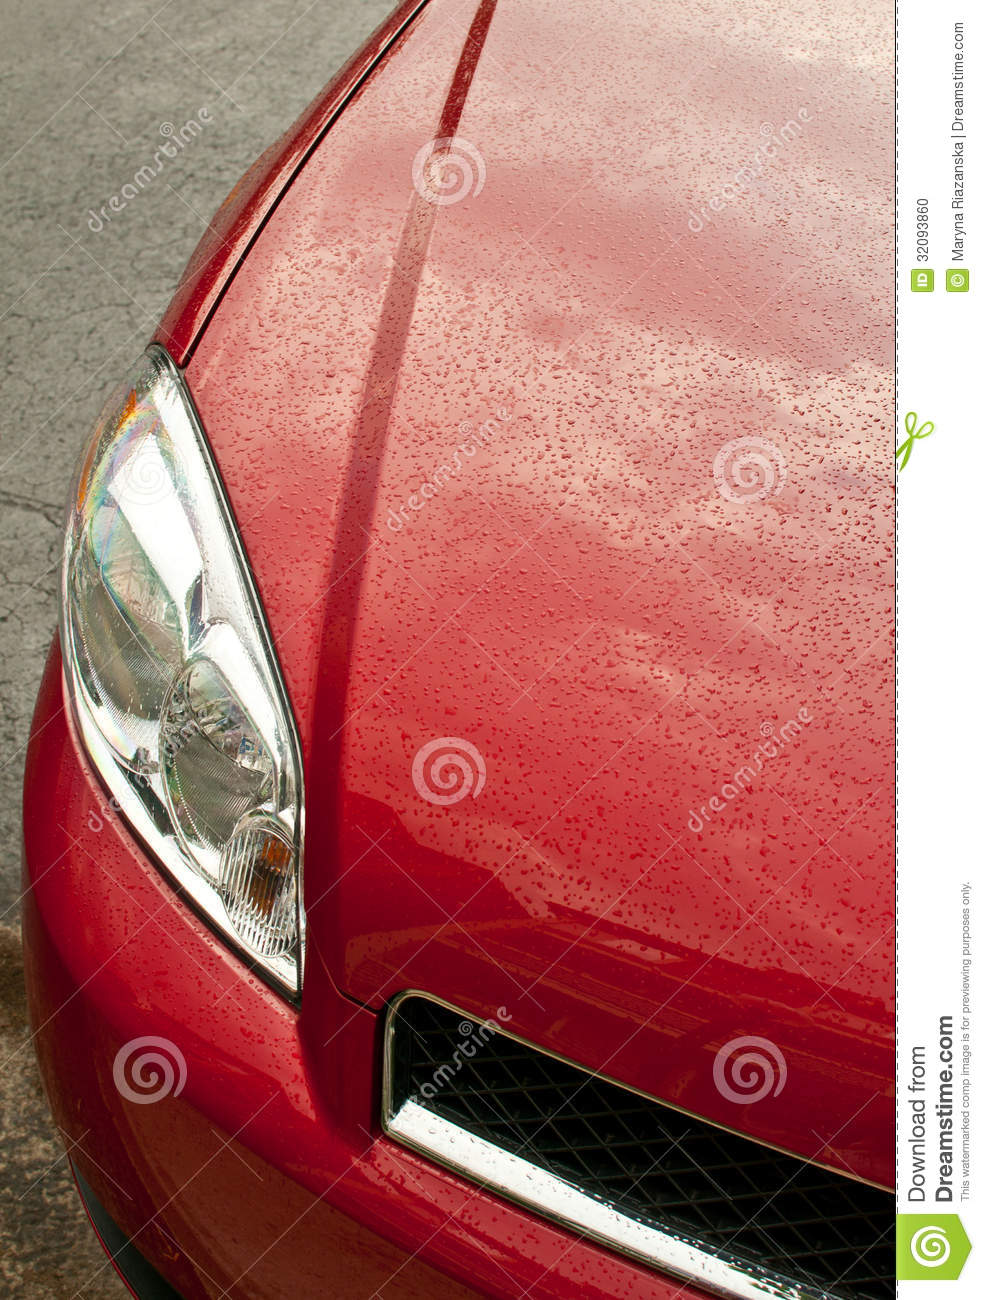 Truck Headlights In Rain : Red car headlight with rain drops stock photo image